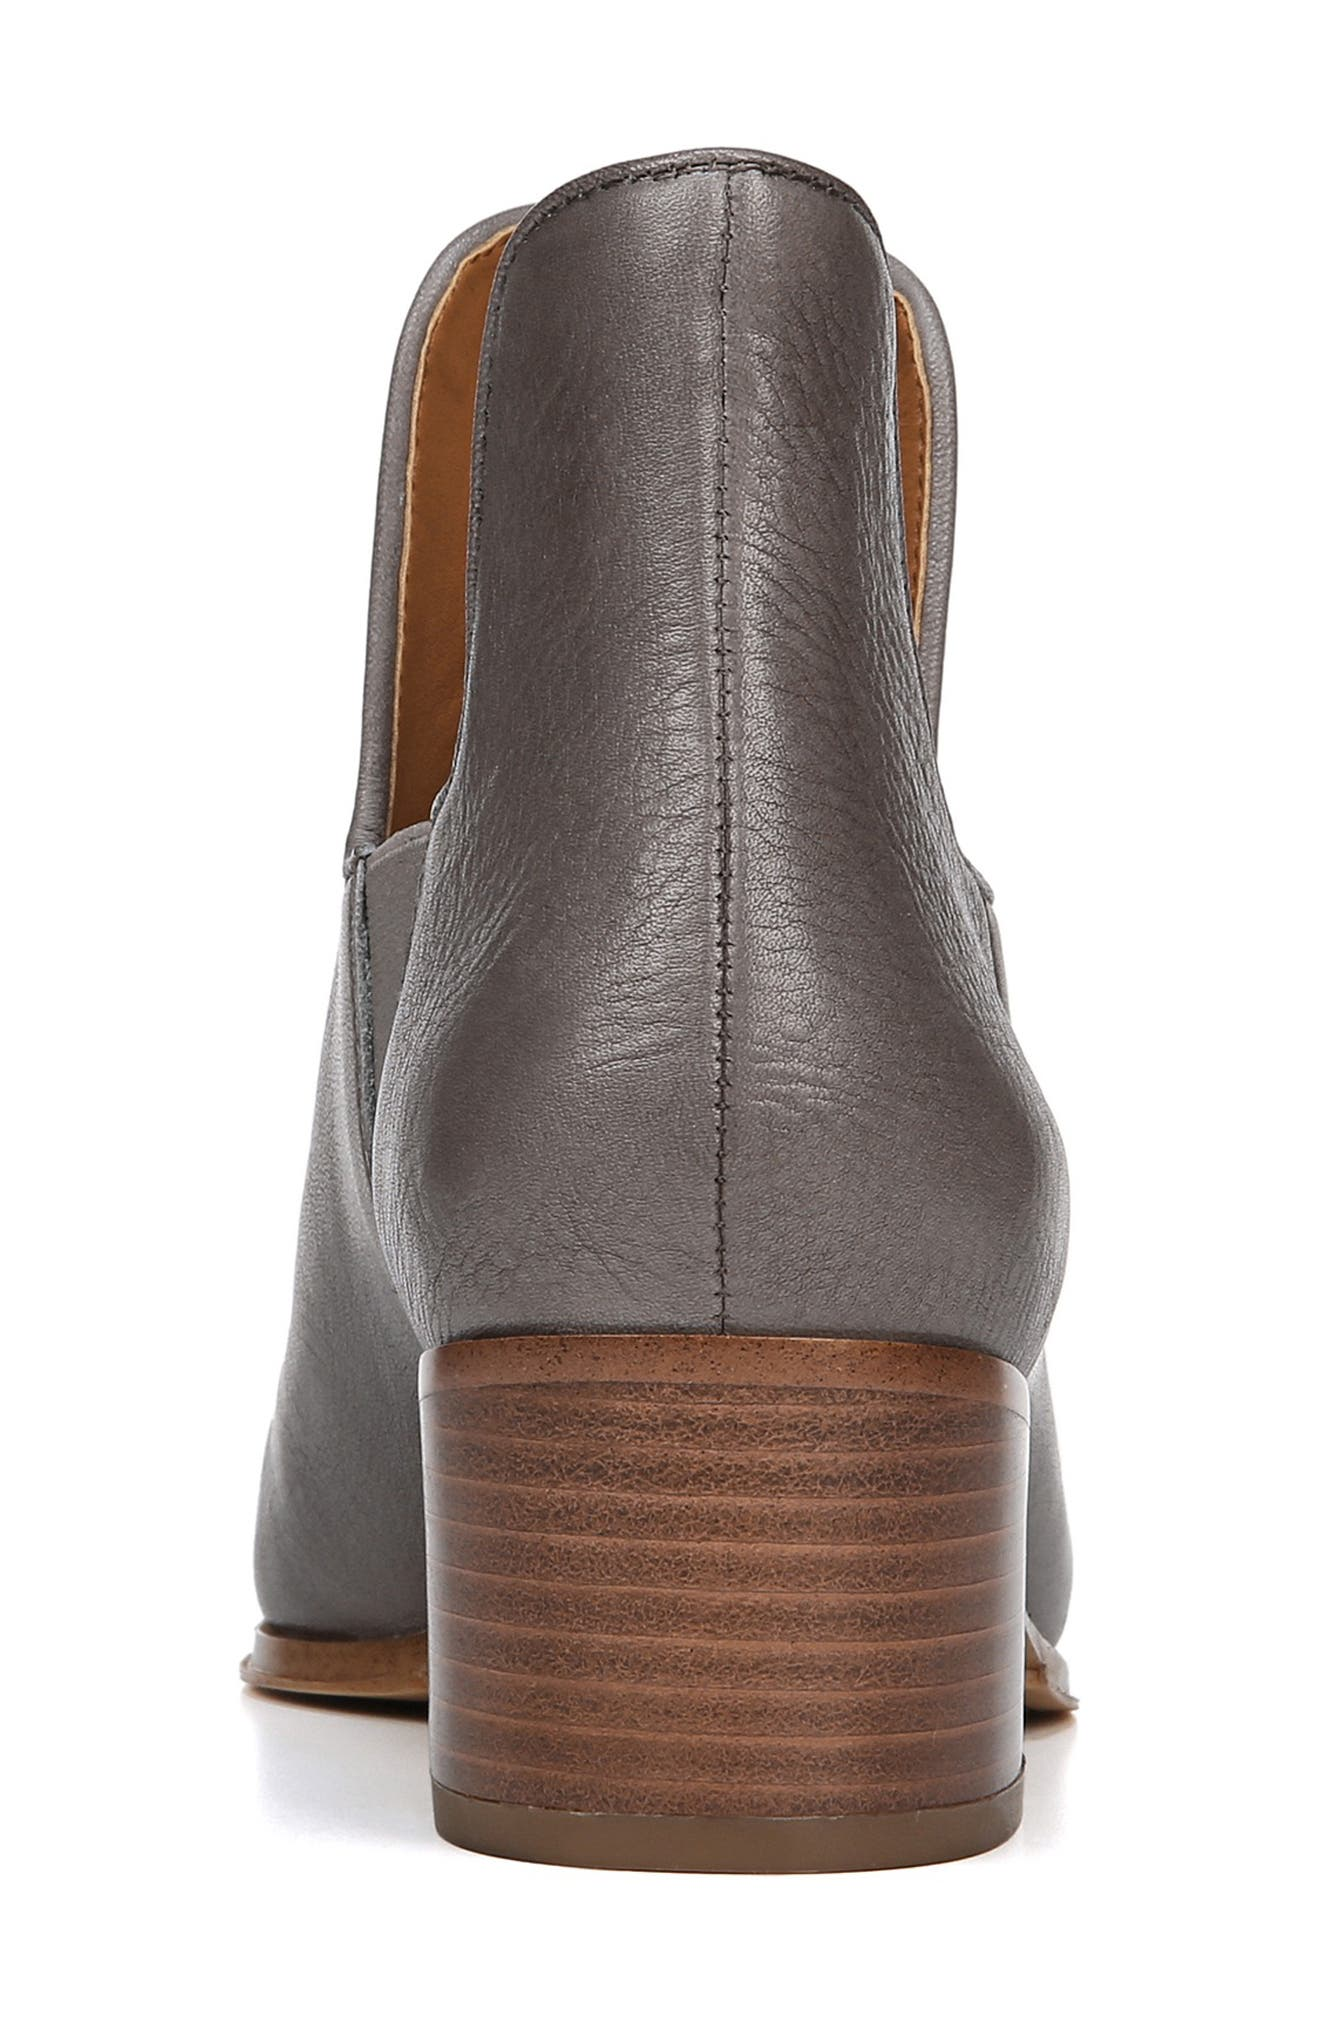 Ashbury Bootie,                             Alternate thumbnail 7, color,                             GREYSTONE LEATHER